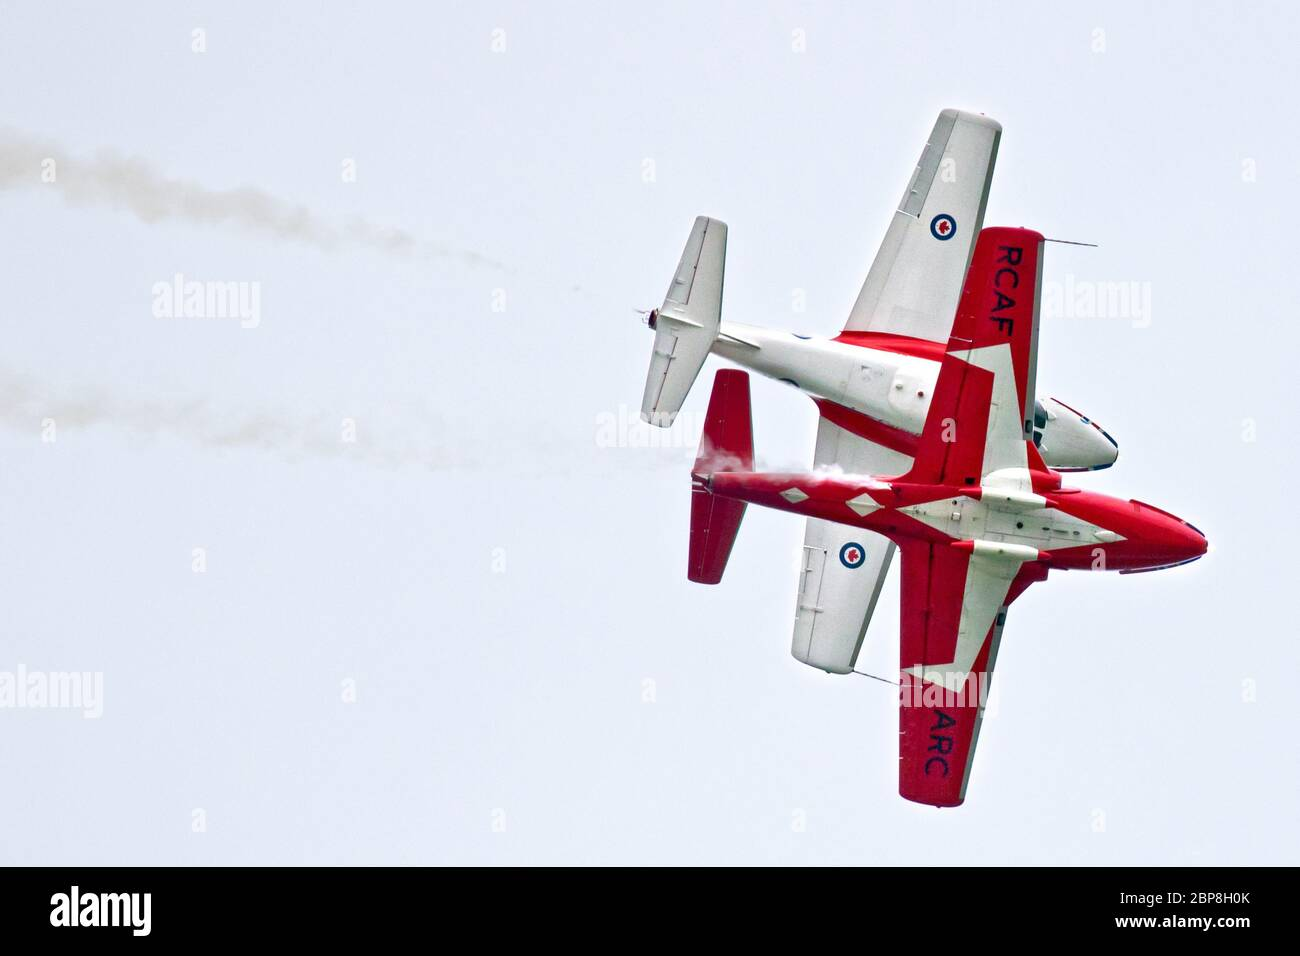 Two Royal Canadian Air Force Snowbirds perform at the September 2018 Airshow London event in London, Ontario, Canada. Stock Photo